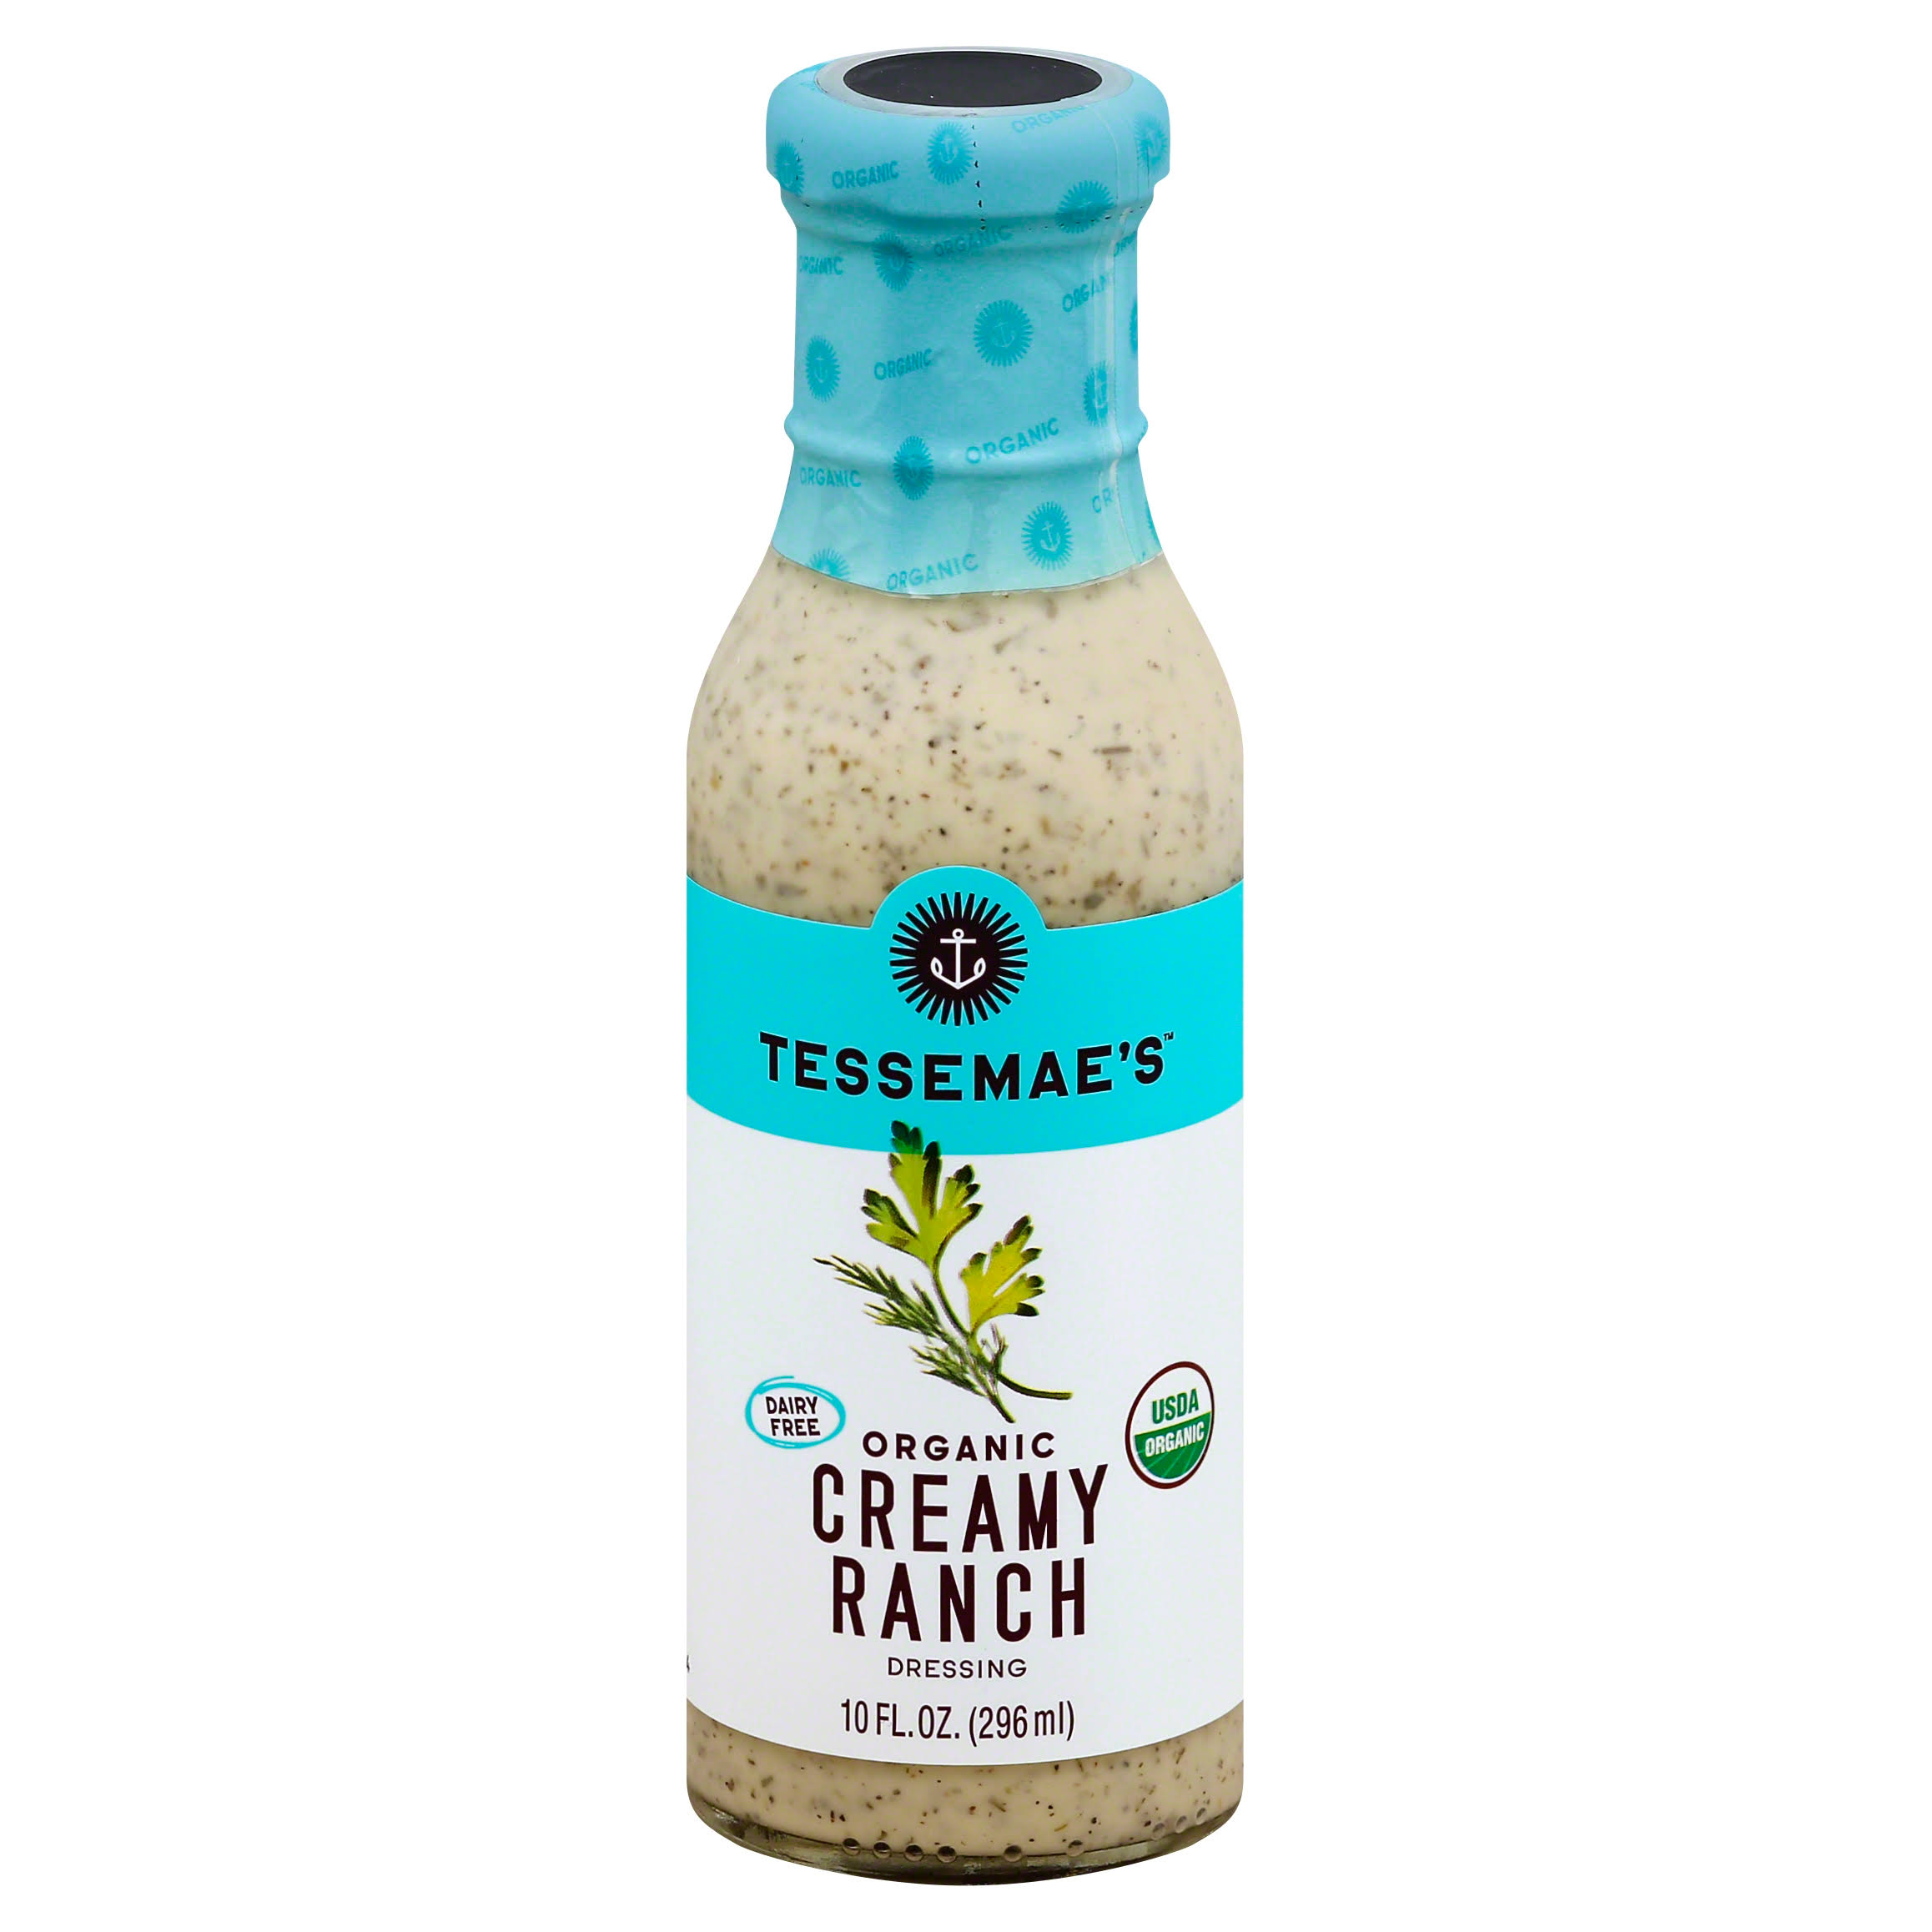 Tessemae's All Natural Dressing Dip - Creamy Ranch, 10oz